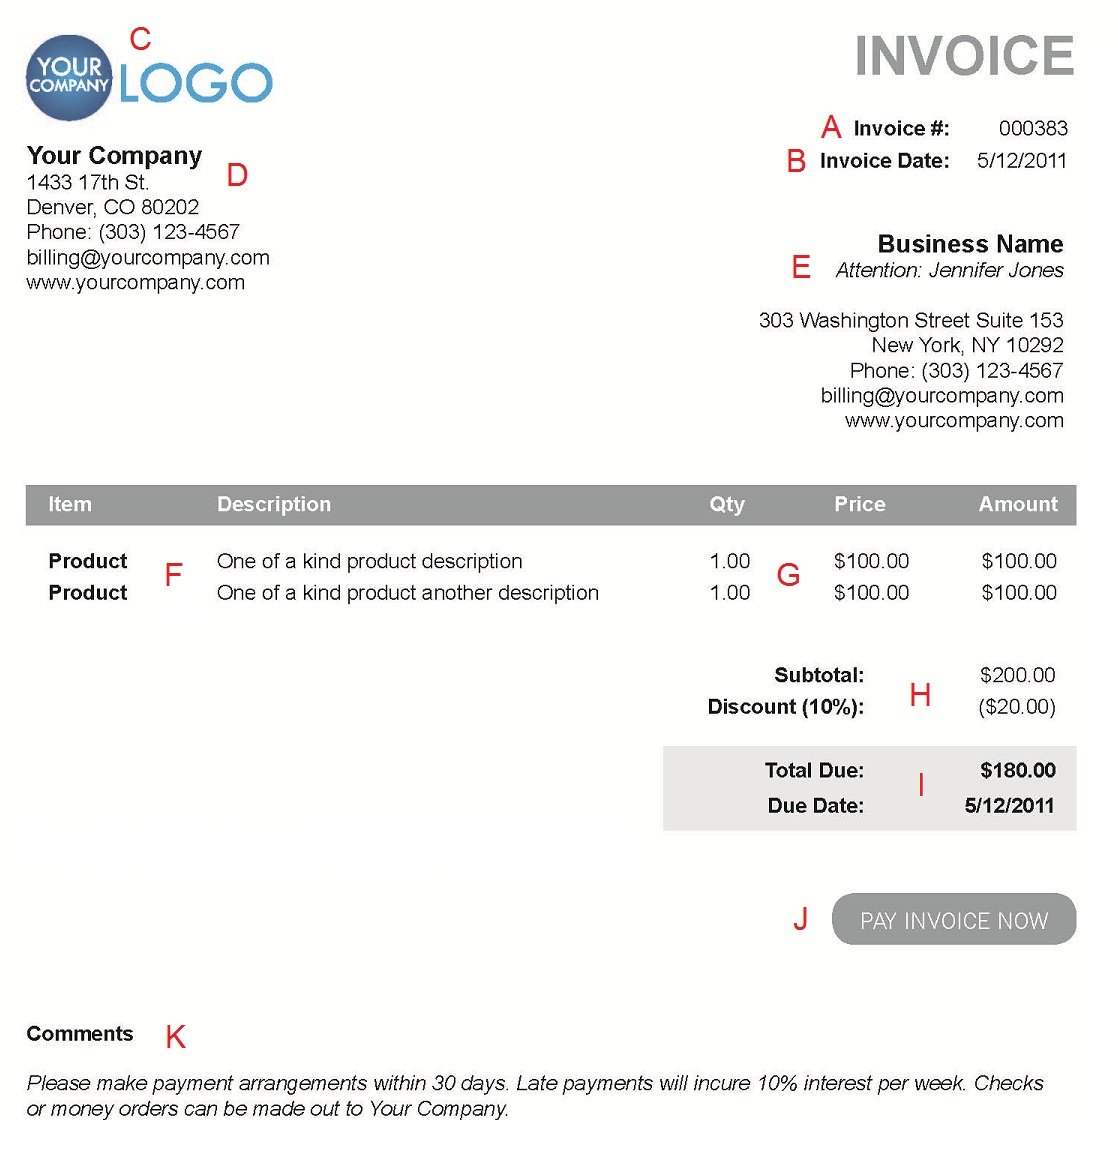 Centralasianshepherdus  Stunning The  Different Sections Of An Electronic Payment Invoice With Remarkable A  With Alluring Business Invoice Template Excel Also Forma Invoice In Addition Commercial Invoice Blank And Invoice Reconciliation Template As Well As Ipad Invoicing Additionally Eom Invoice From Paysimplecom With Centralasianshepherdus  Remarkable The  Different Sections Of An Electronic Payment Invoice With Alluring A  And Stunning Business Invoice Template Excel Also Forma Invoice In Addition Commercial Invoice Blank From Paysimplecom